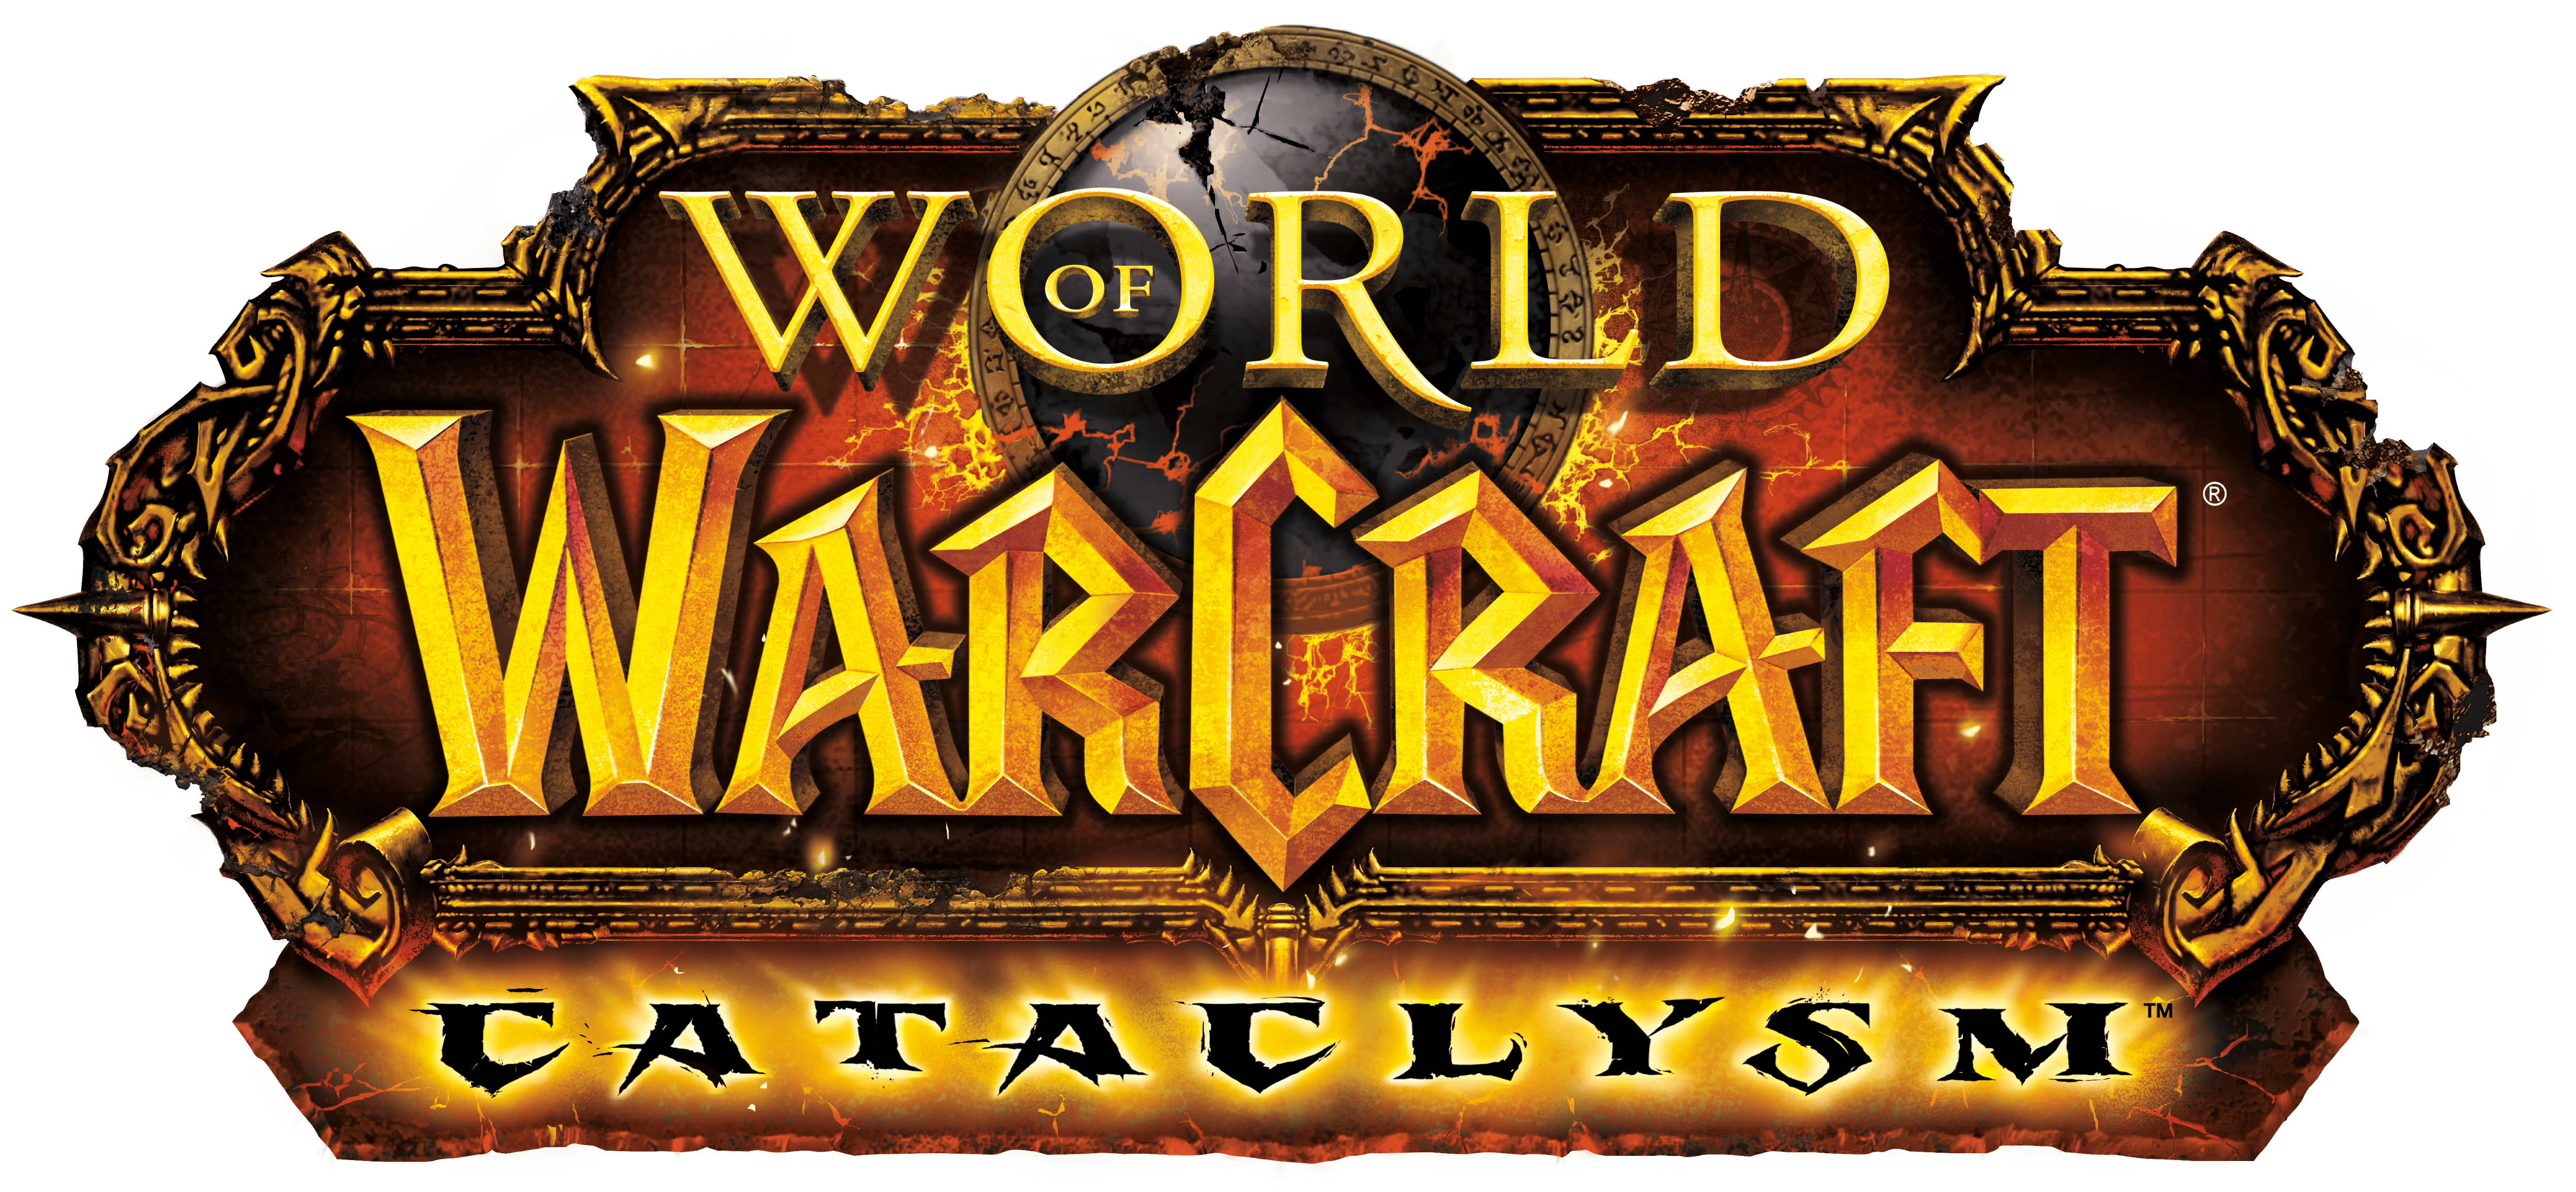 World of Warcraft: Cataclysm - Wowpedia - Your wiki guide to